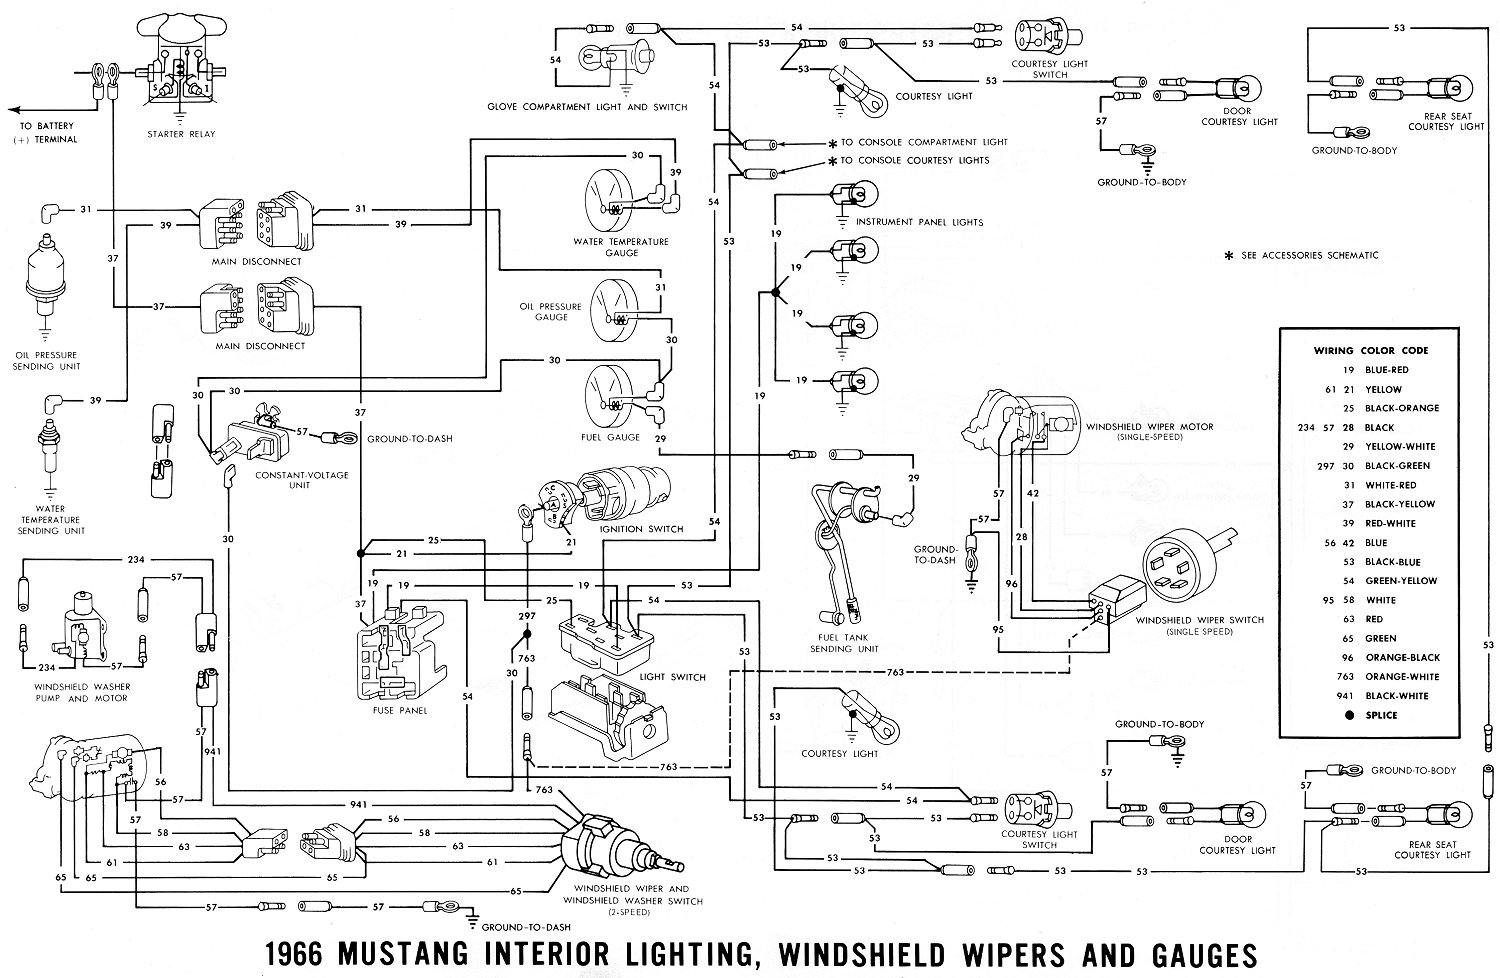 1966 Mustang Interior Lights, Windshield Wiper and Gauges · Schematic